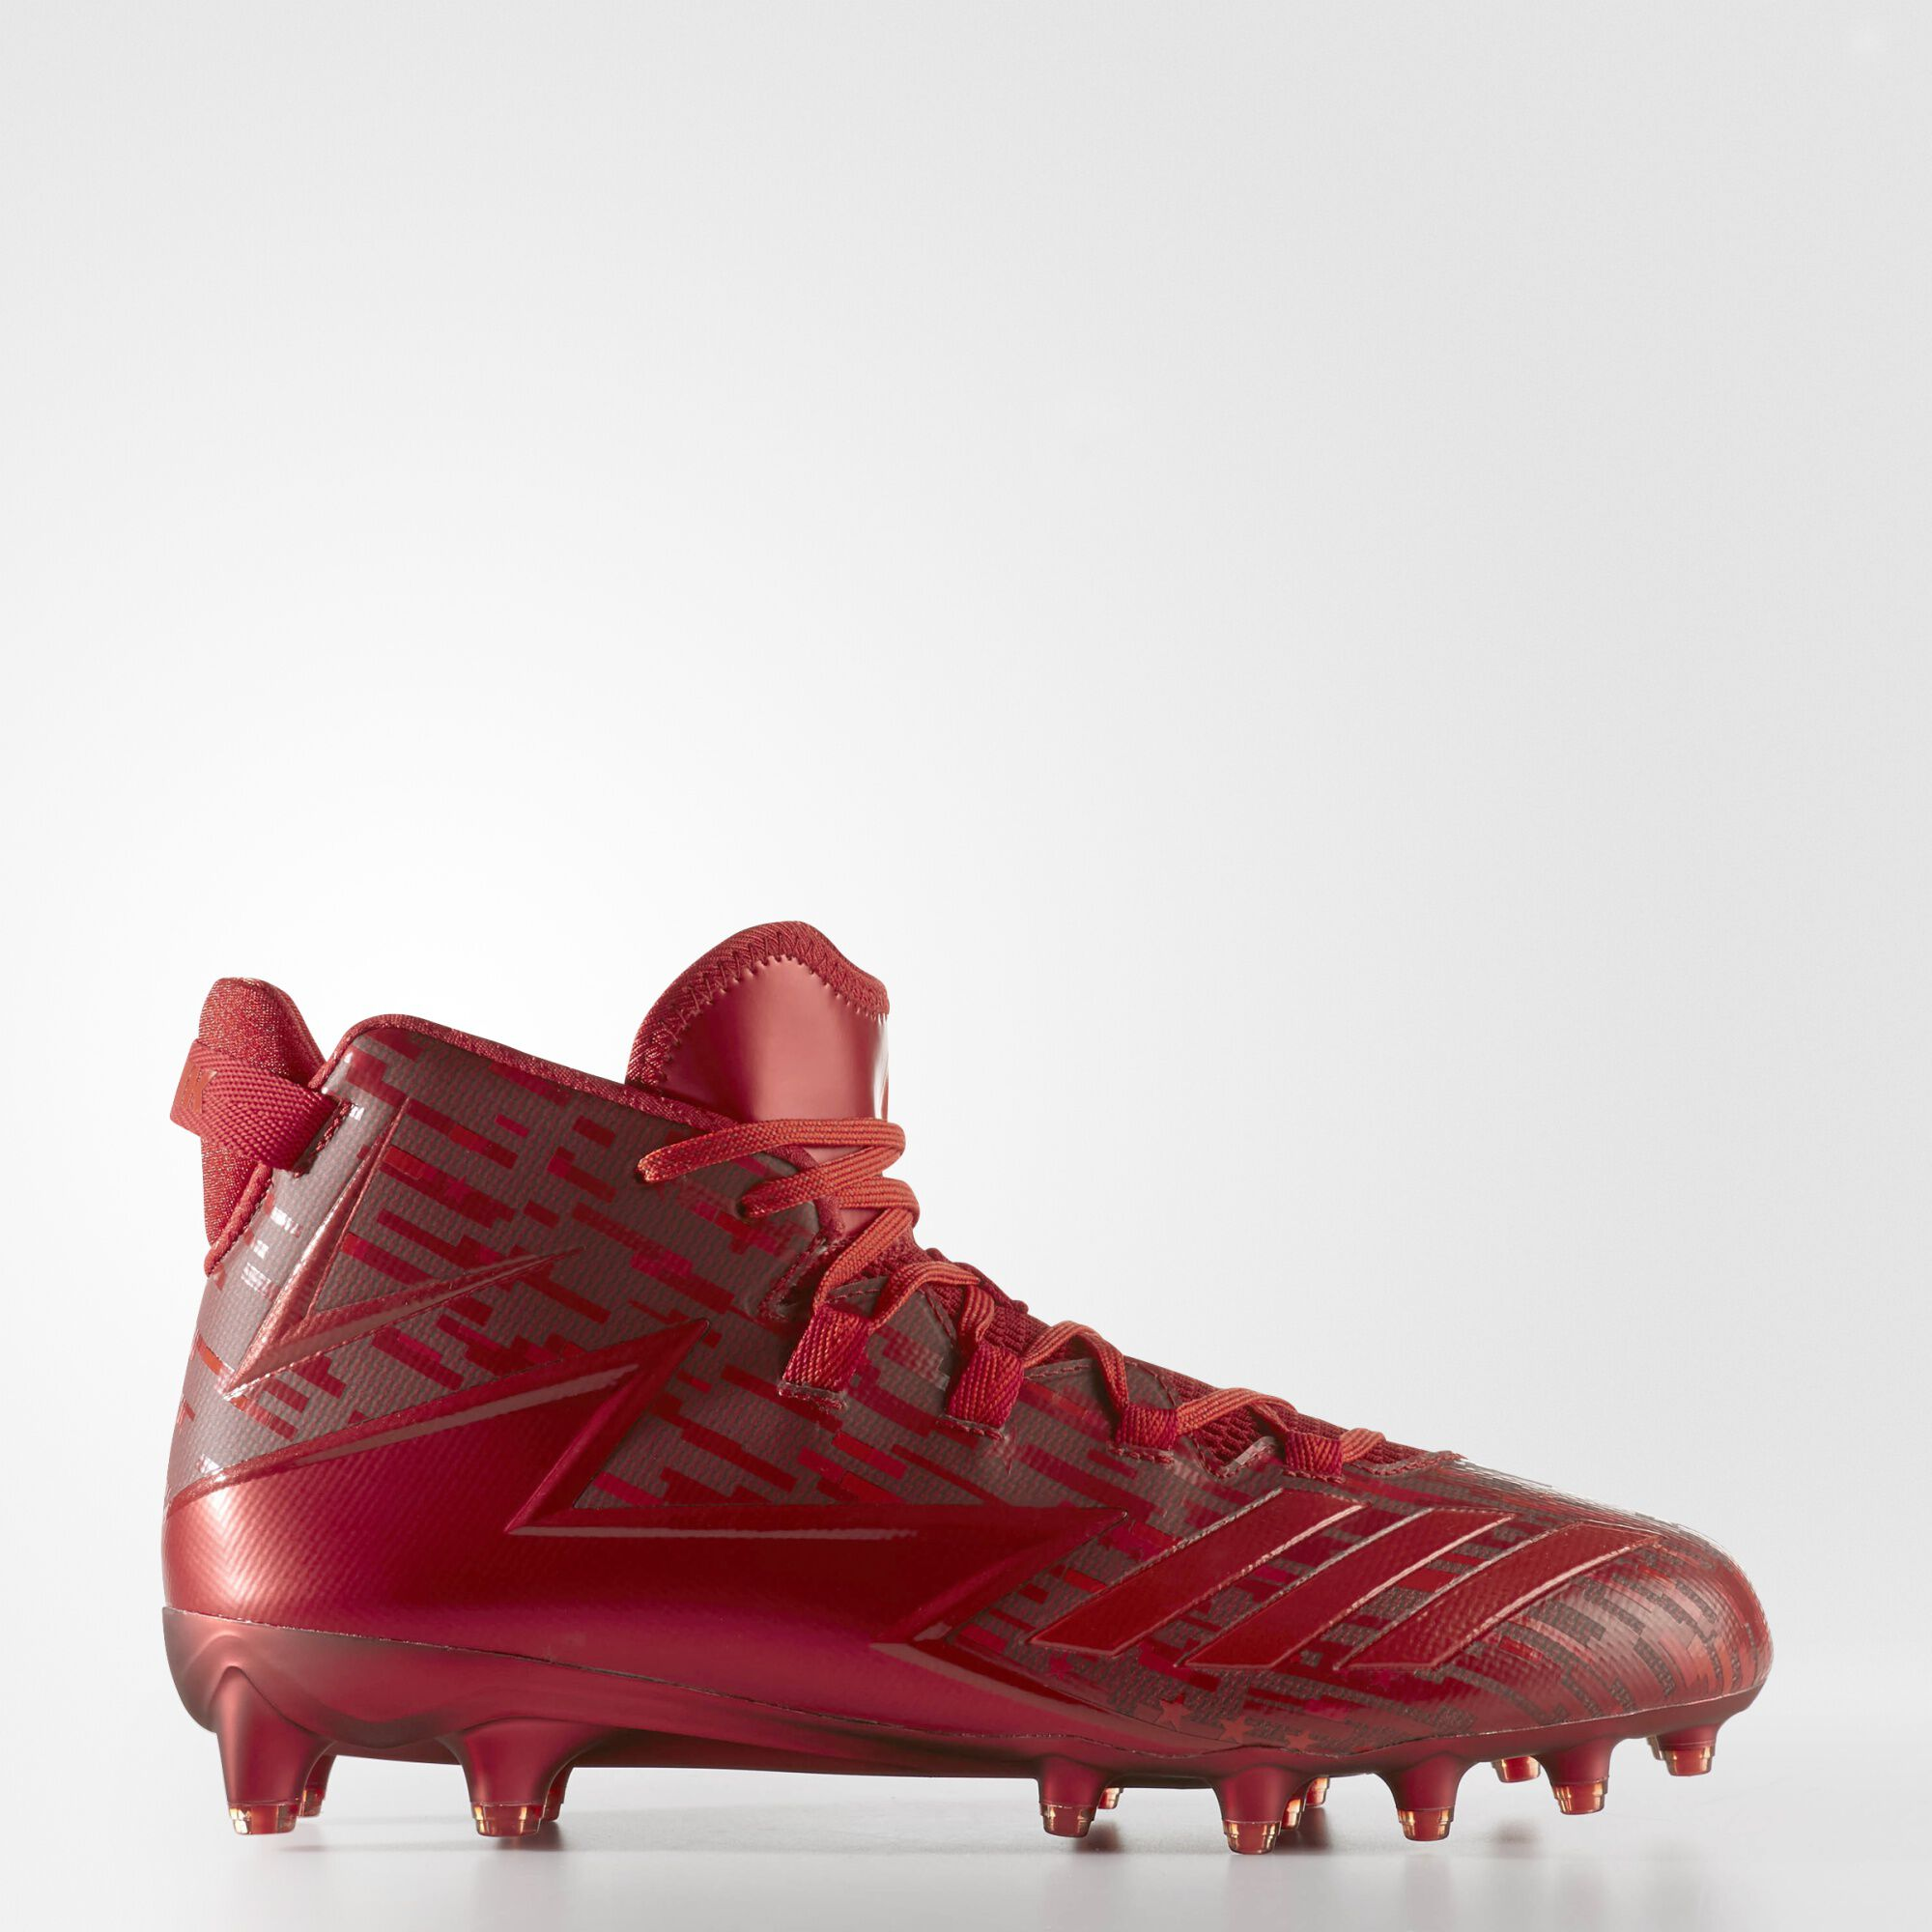 adidas - Freak X Kevlar Dipped Cleats Power Red / University Red /  University Red BW0388